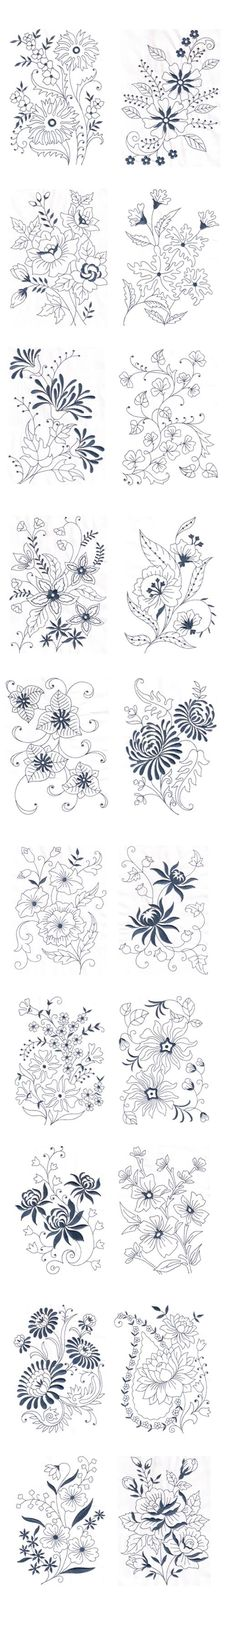 Amazing Emotions - Vintage Florals 01    Machine Embroidery Designs --- Vintage Florals 01 These fabulous vintage floral designs can add supreme beauty to your products like bed linen, bath linen, kitchen linen, curtains and even dresses. You can notice the variety in the floral designs    For more details visit http://www.embroideryemotions.com